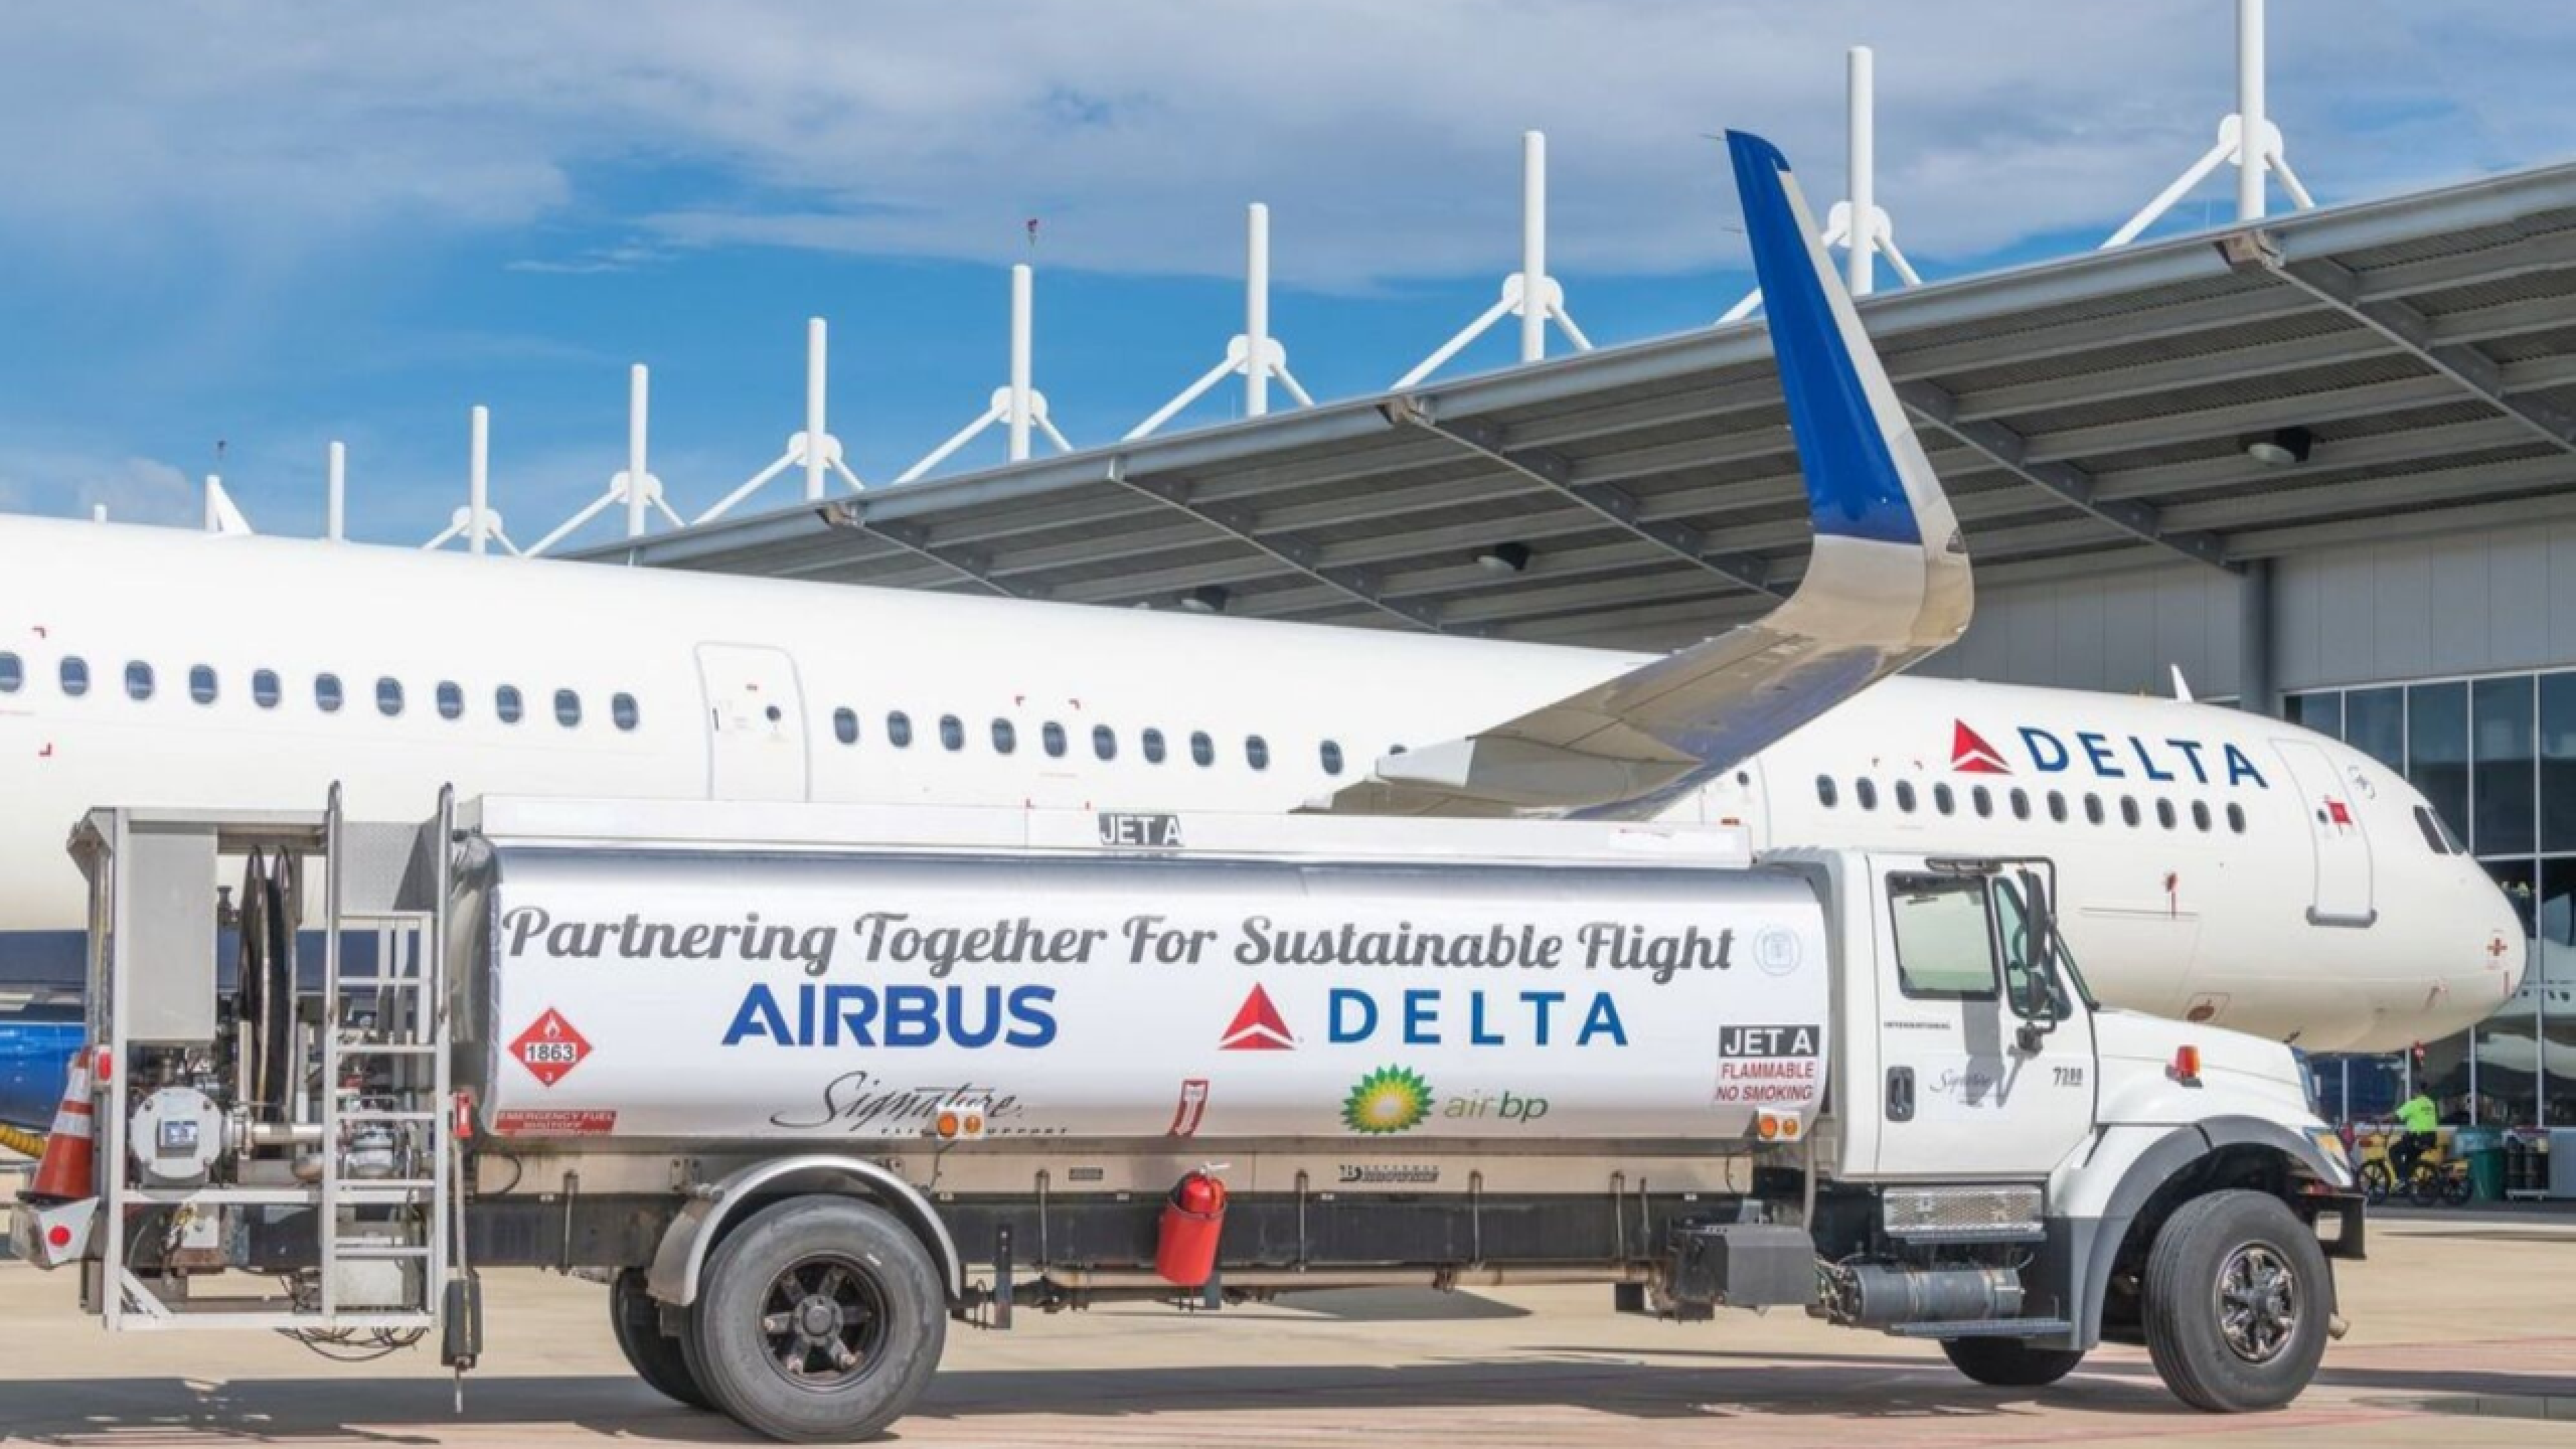 Delta plane - Delta will use biofuels and carbon offsets in coordination with Air BP